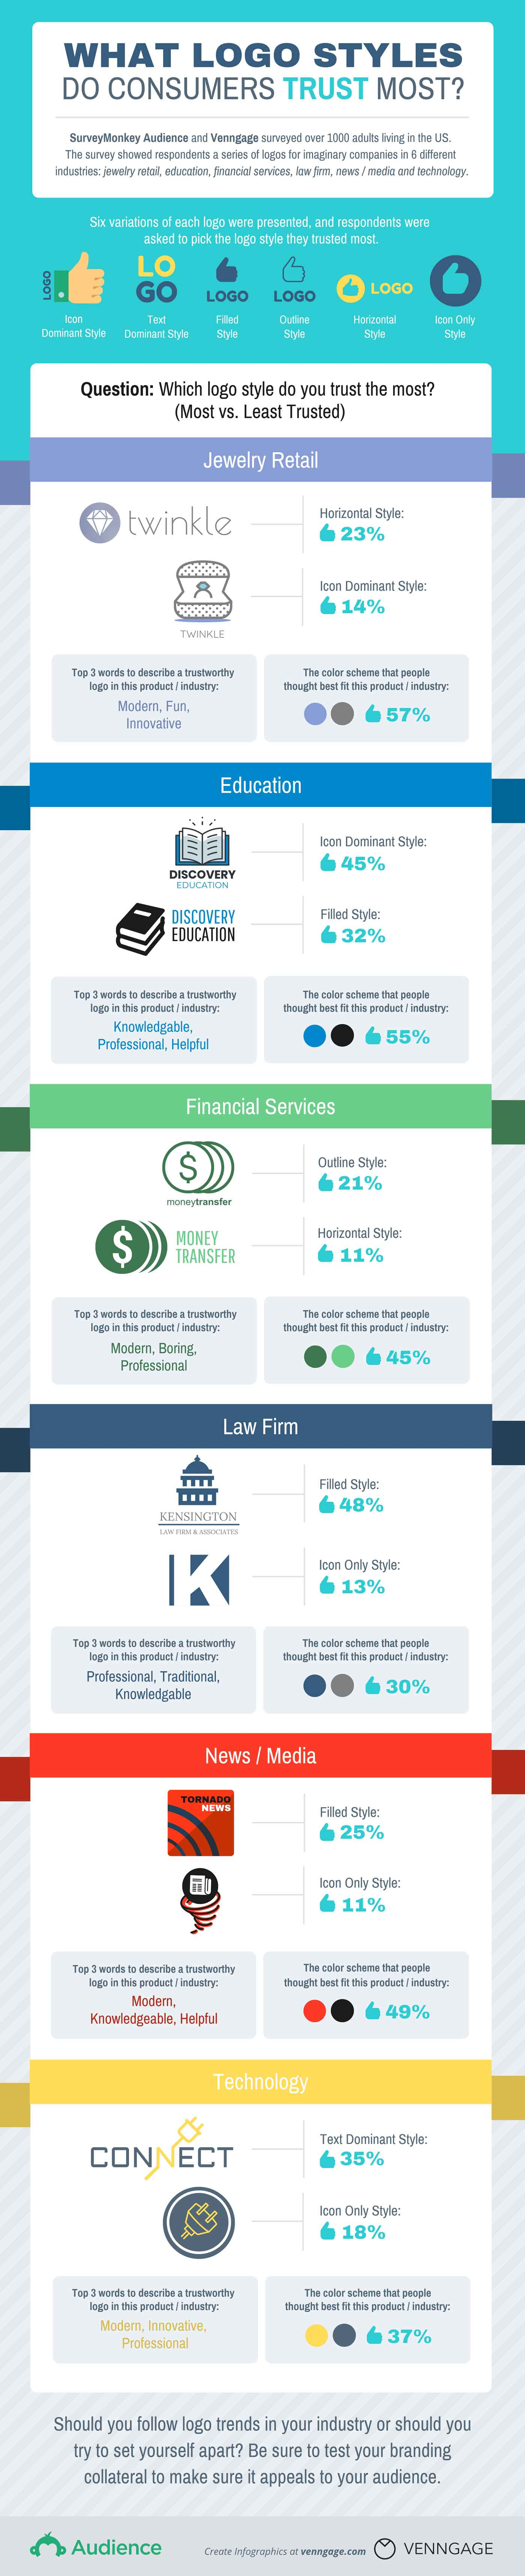 REV_LogoSurvey_Infographic-1